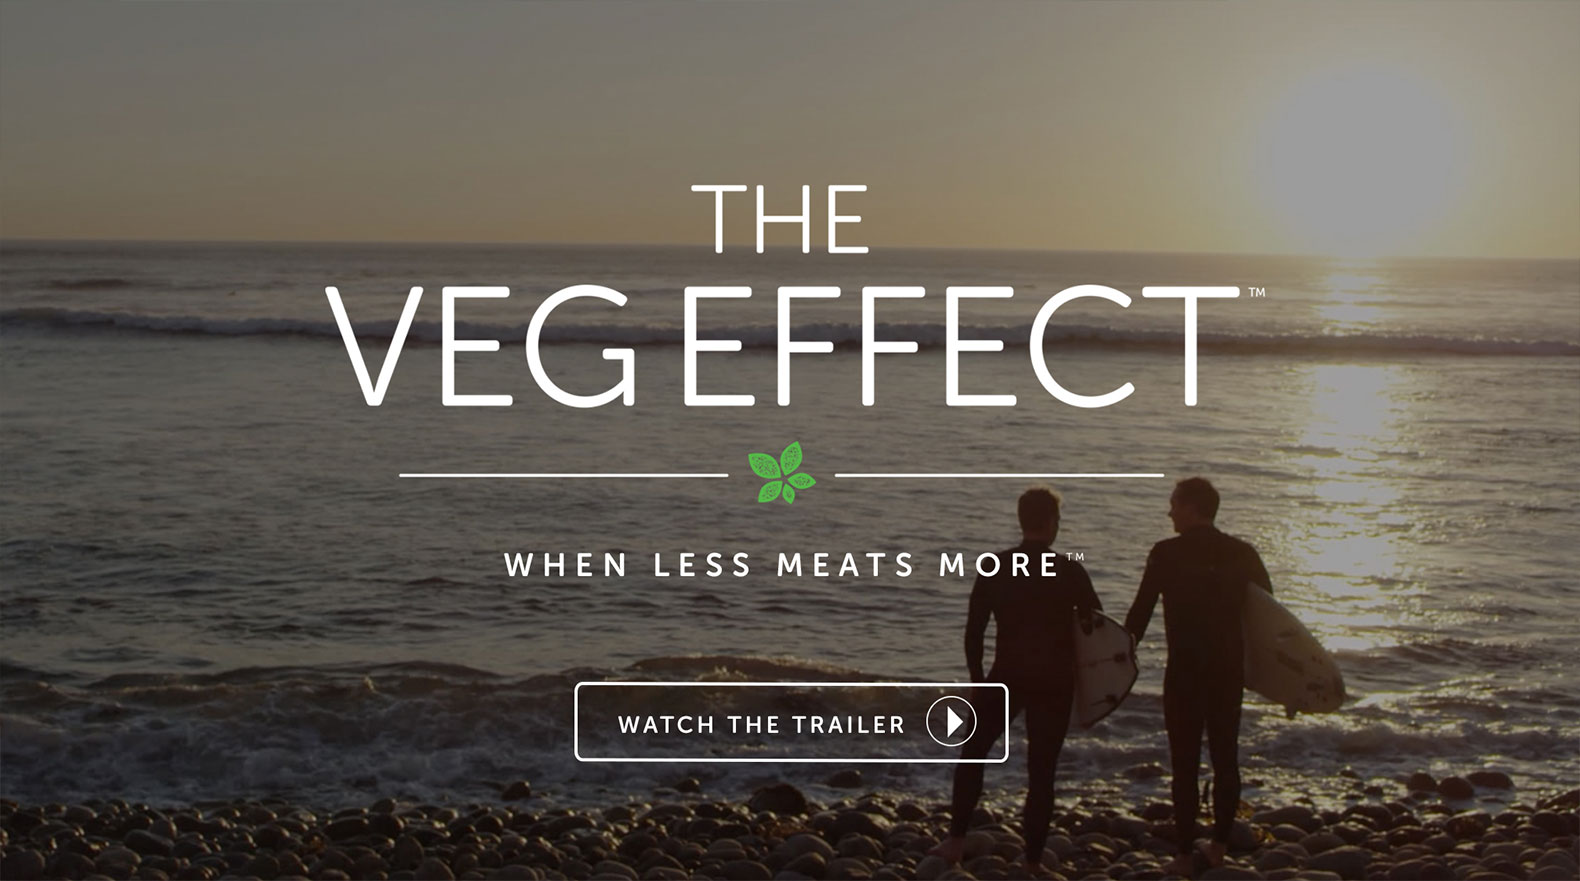 Instead of making meat eaters feel guilty, The Veg Effect shows what people *can* do to help animals, their health and the planet